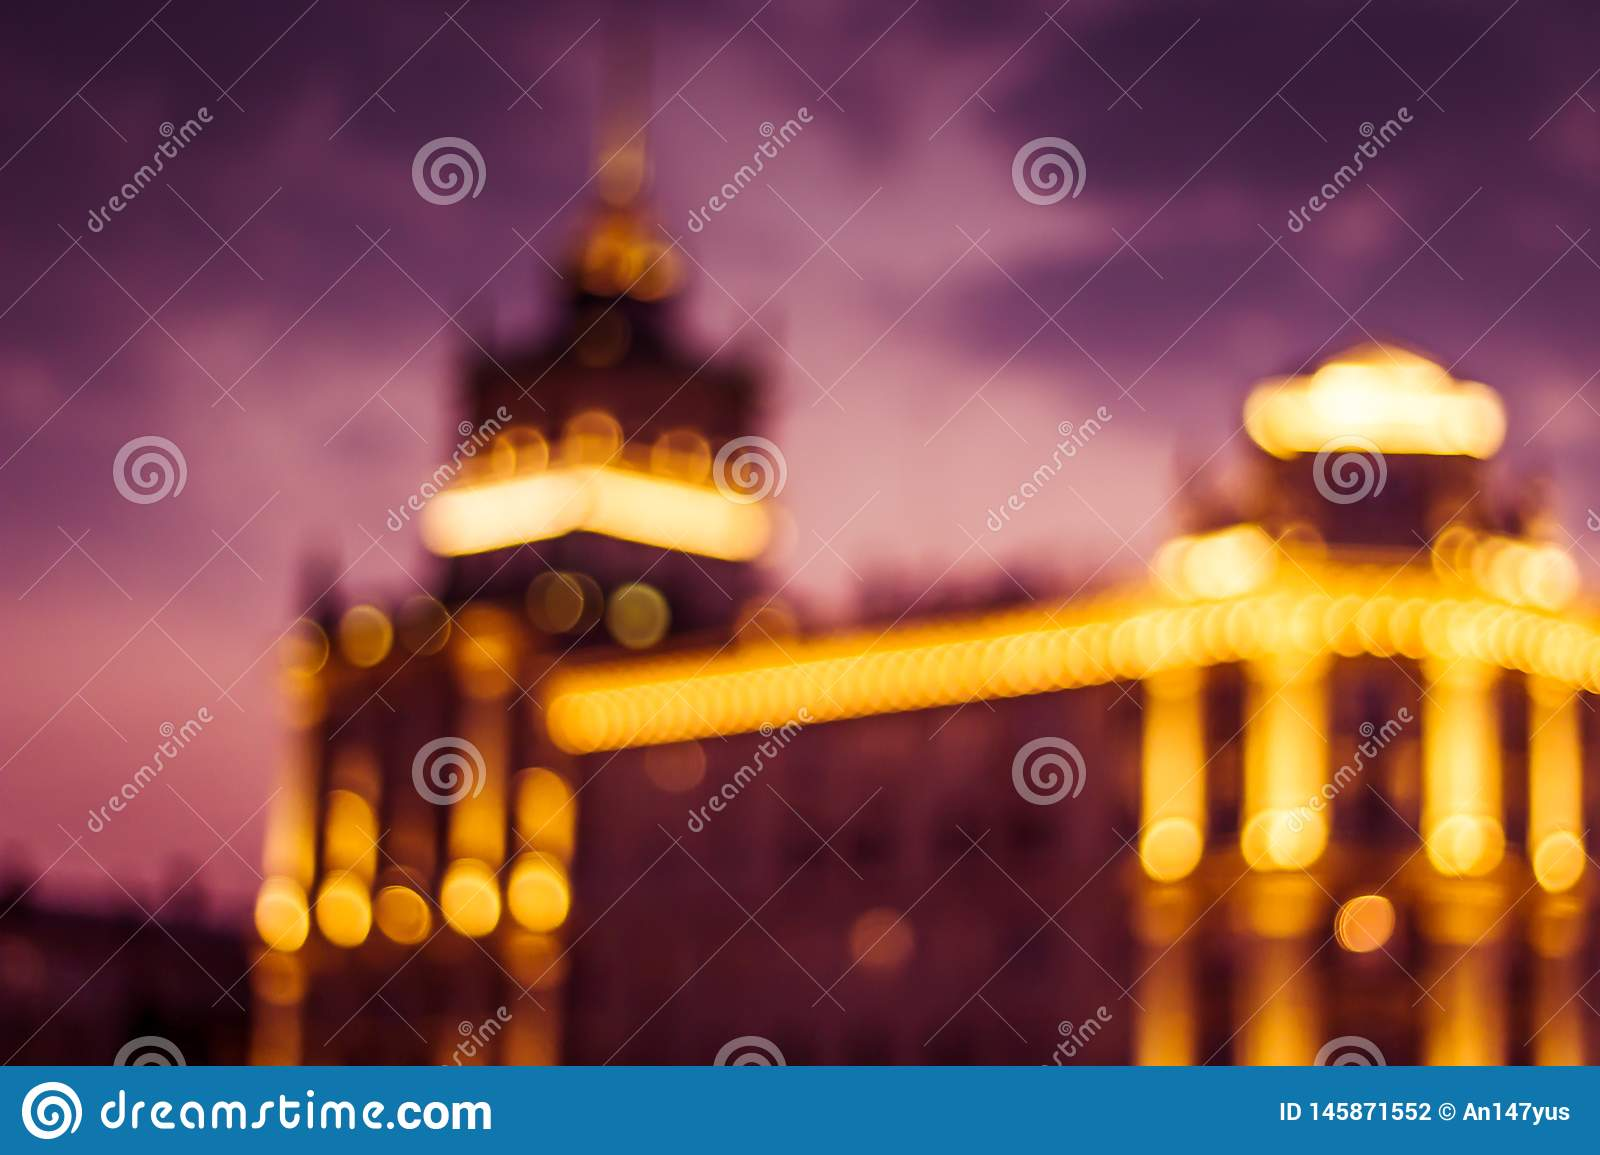 Abstract artistic photo: blurry cityscape with streetlights